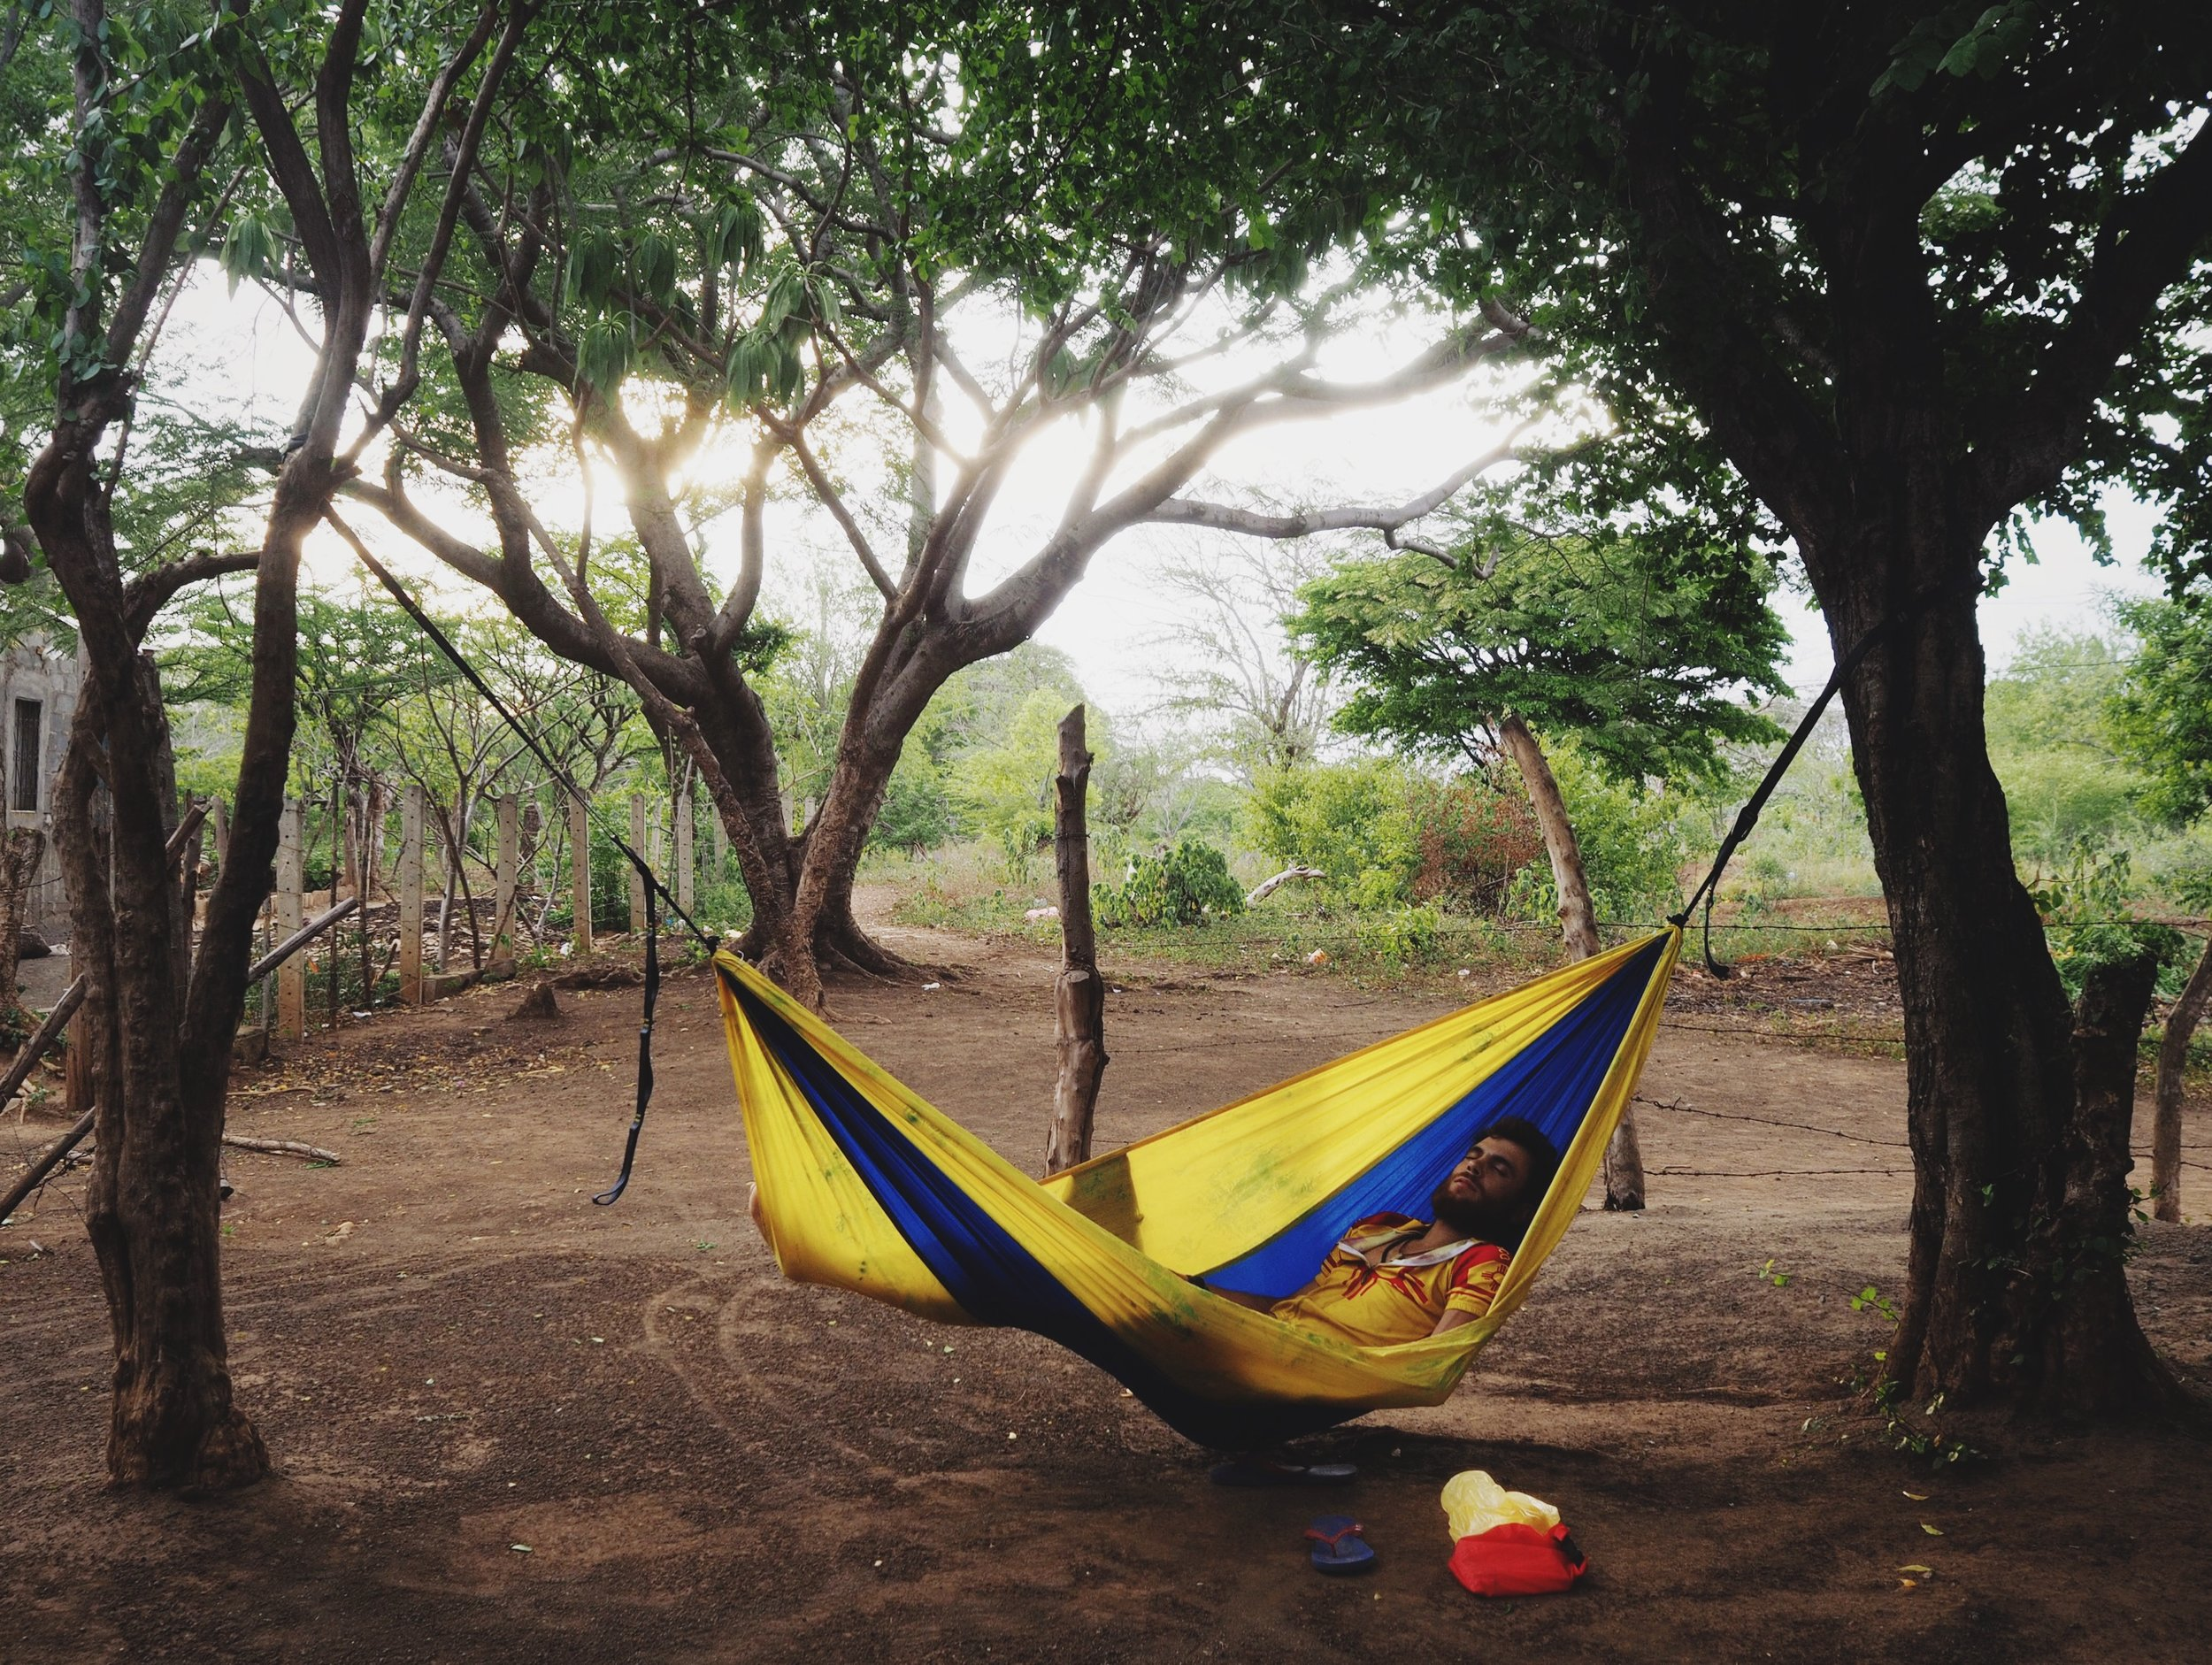 Taking a snooze in our Serac hammock after a hot pedal around the Chiltepe Peninsula